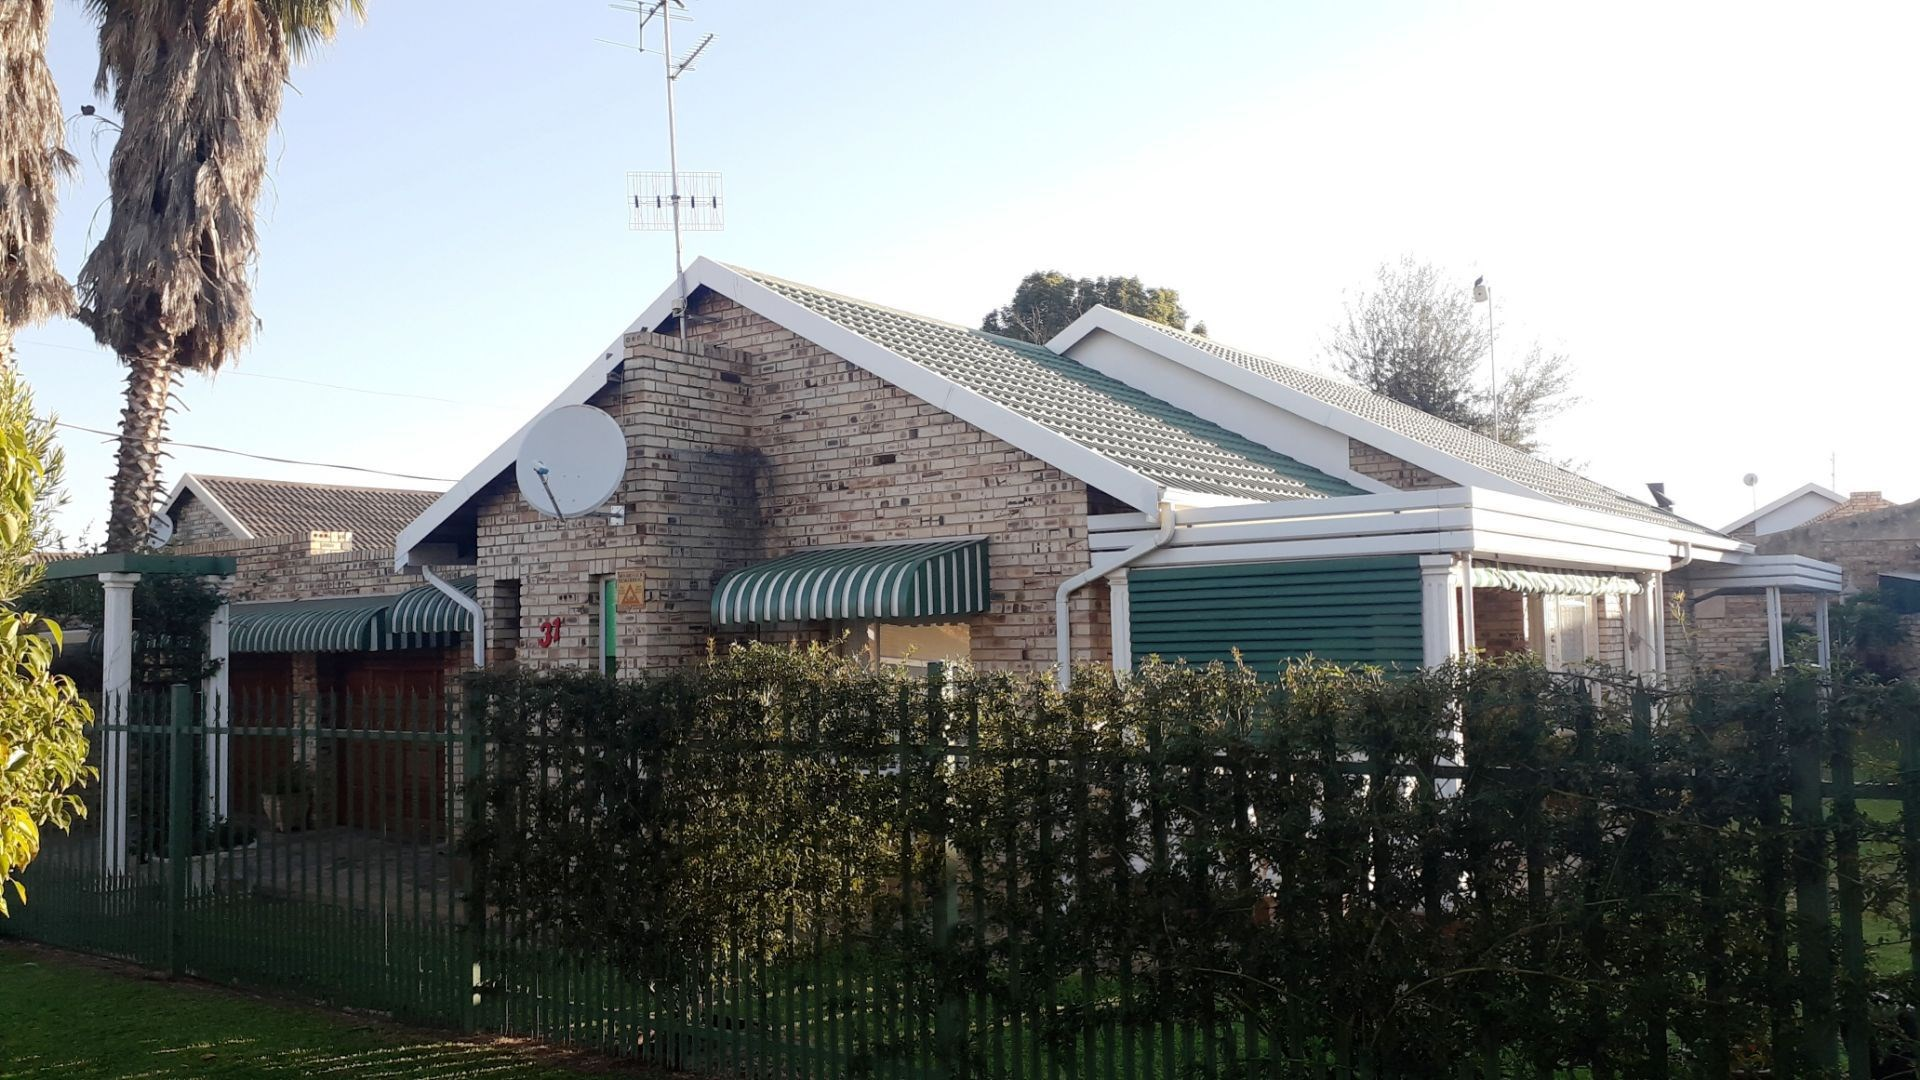 3 Bedroom House for Sale in Kannoniers Park